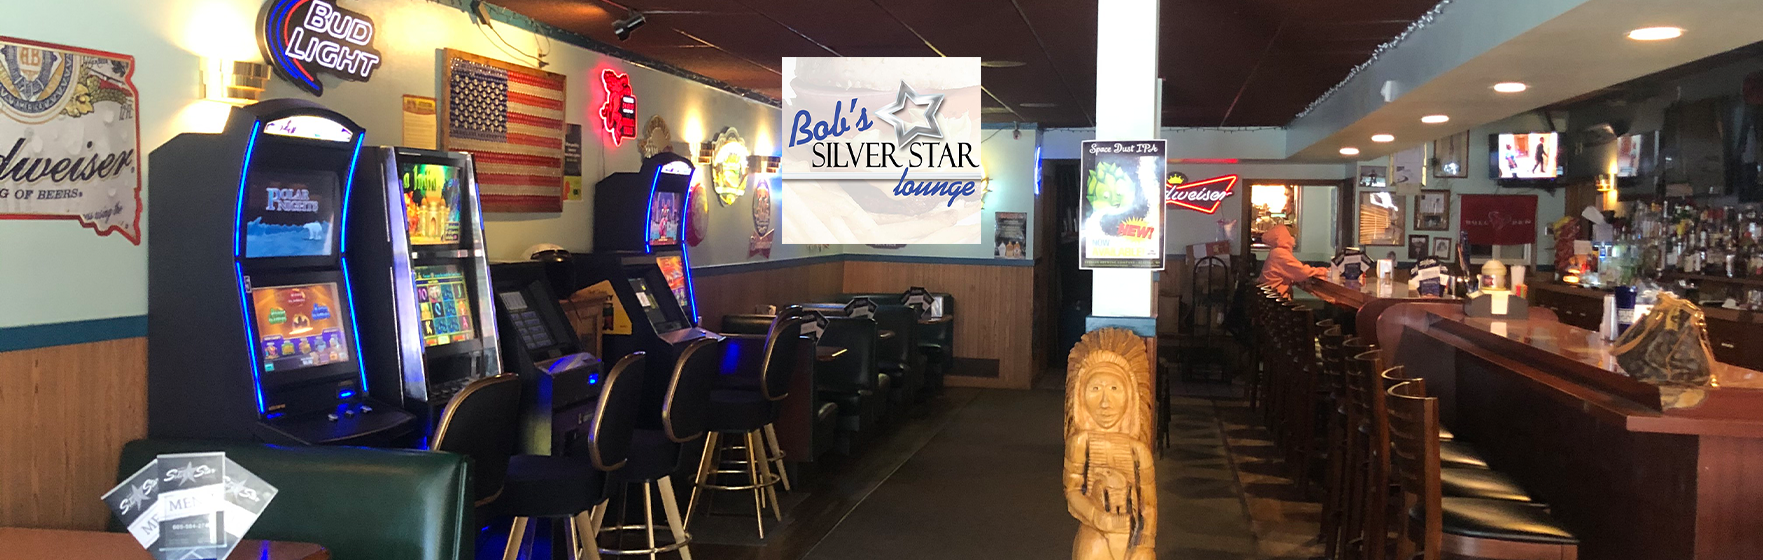 Save 50% at Bob's Silver Star Lounge in Lead, SD! $20 for only $10!